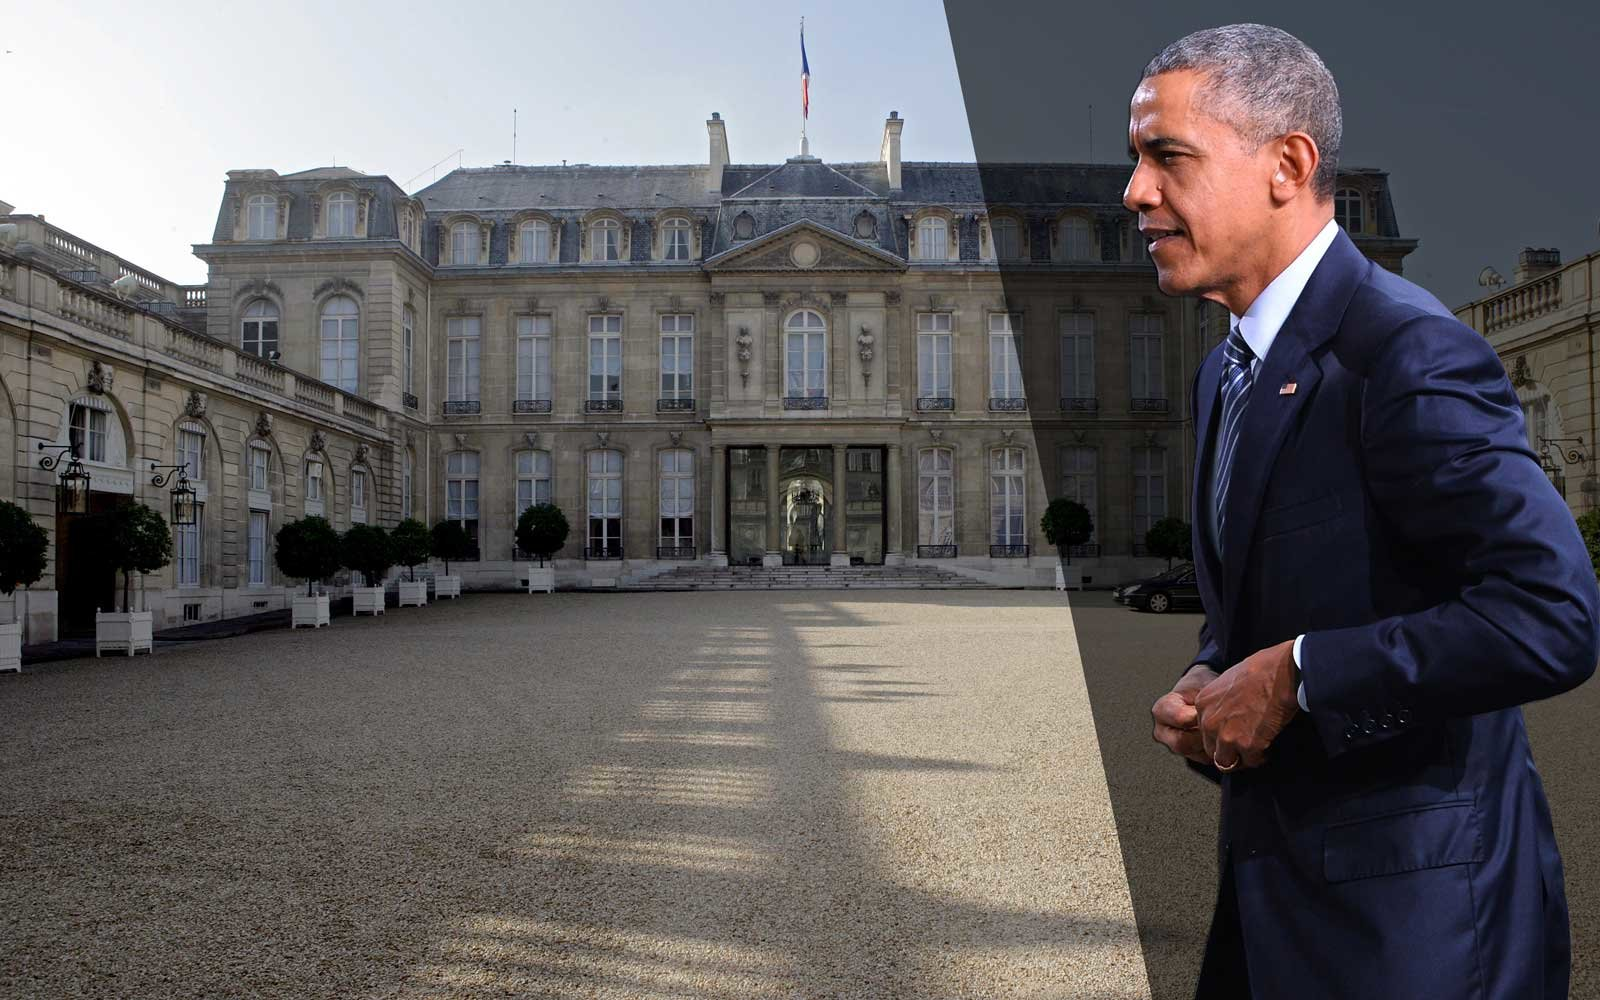 Obama Is on a Five-day World Tour and His Next Stop Is Paris